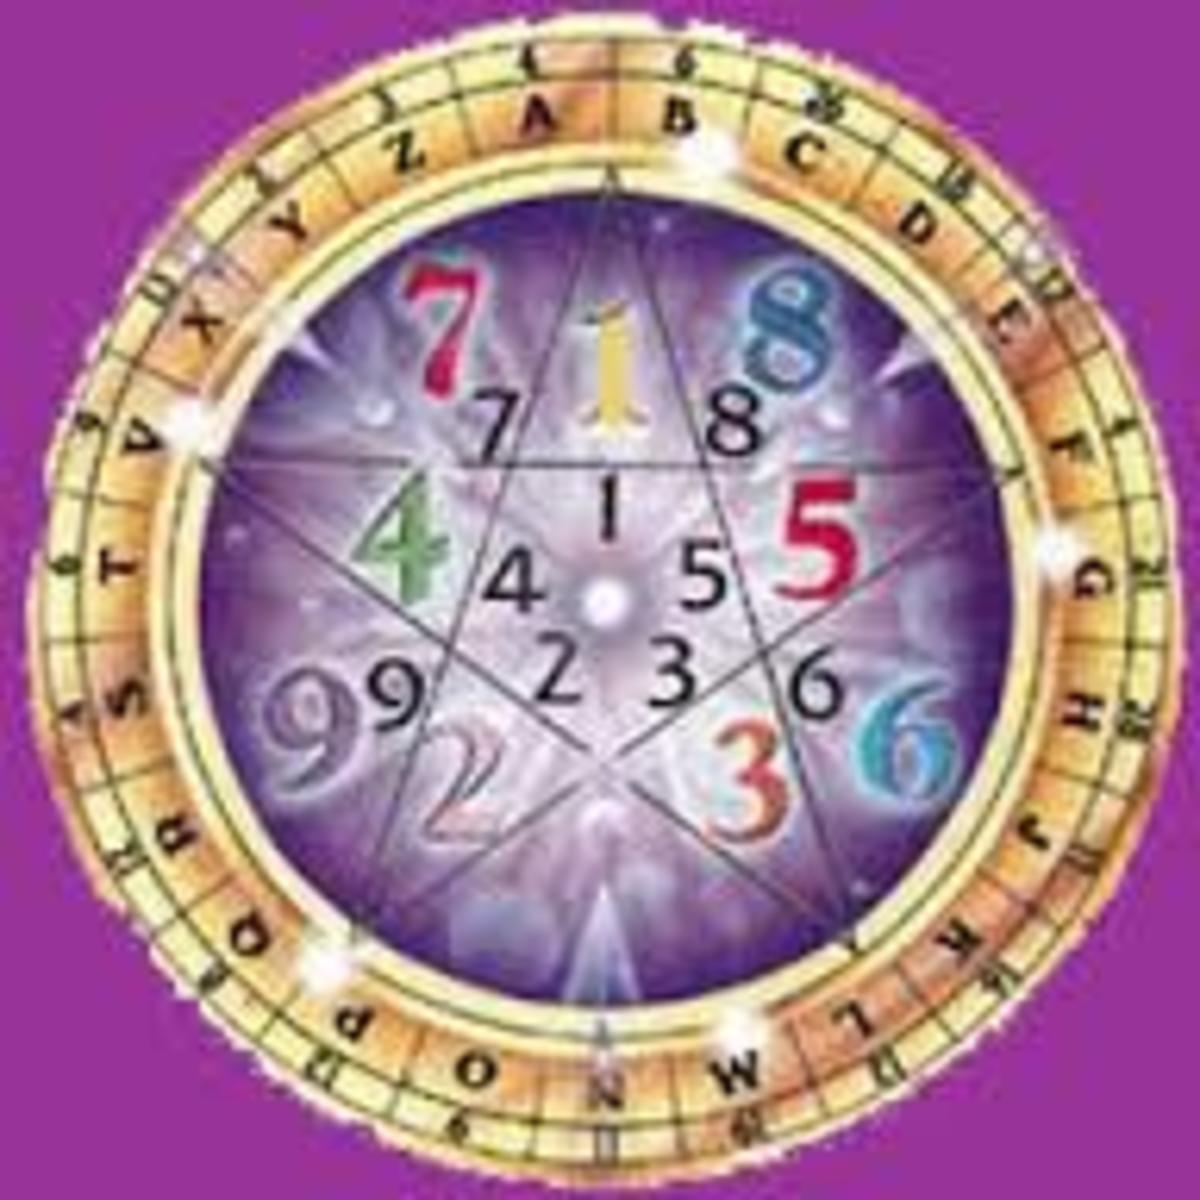 The numbers wheel of Fortune